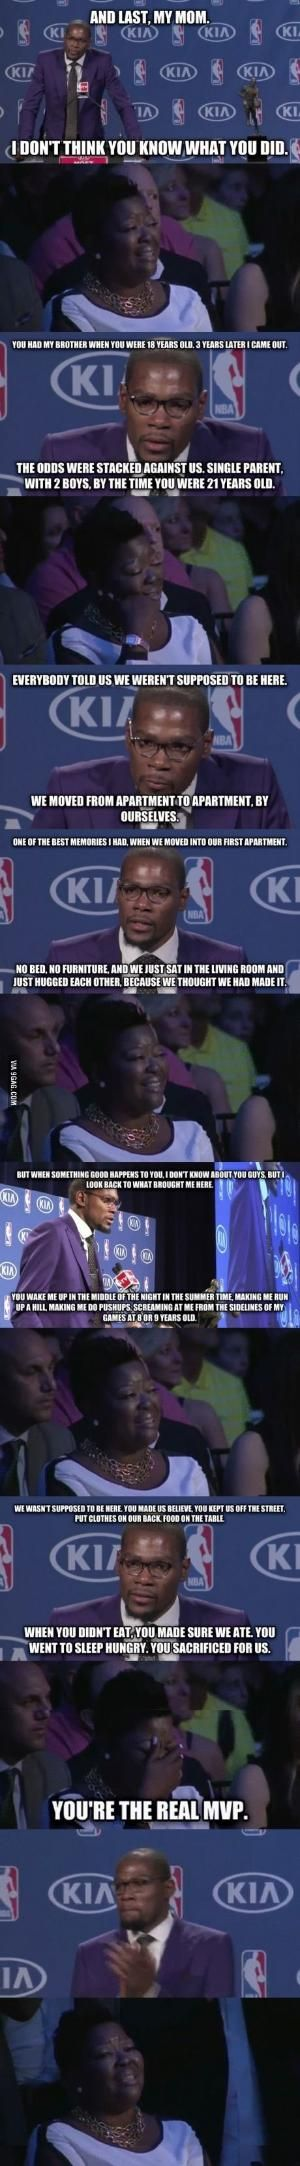 Kevin Durant talks about his mom during MVP speech. by albine